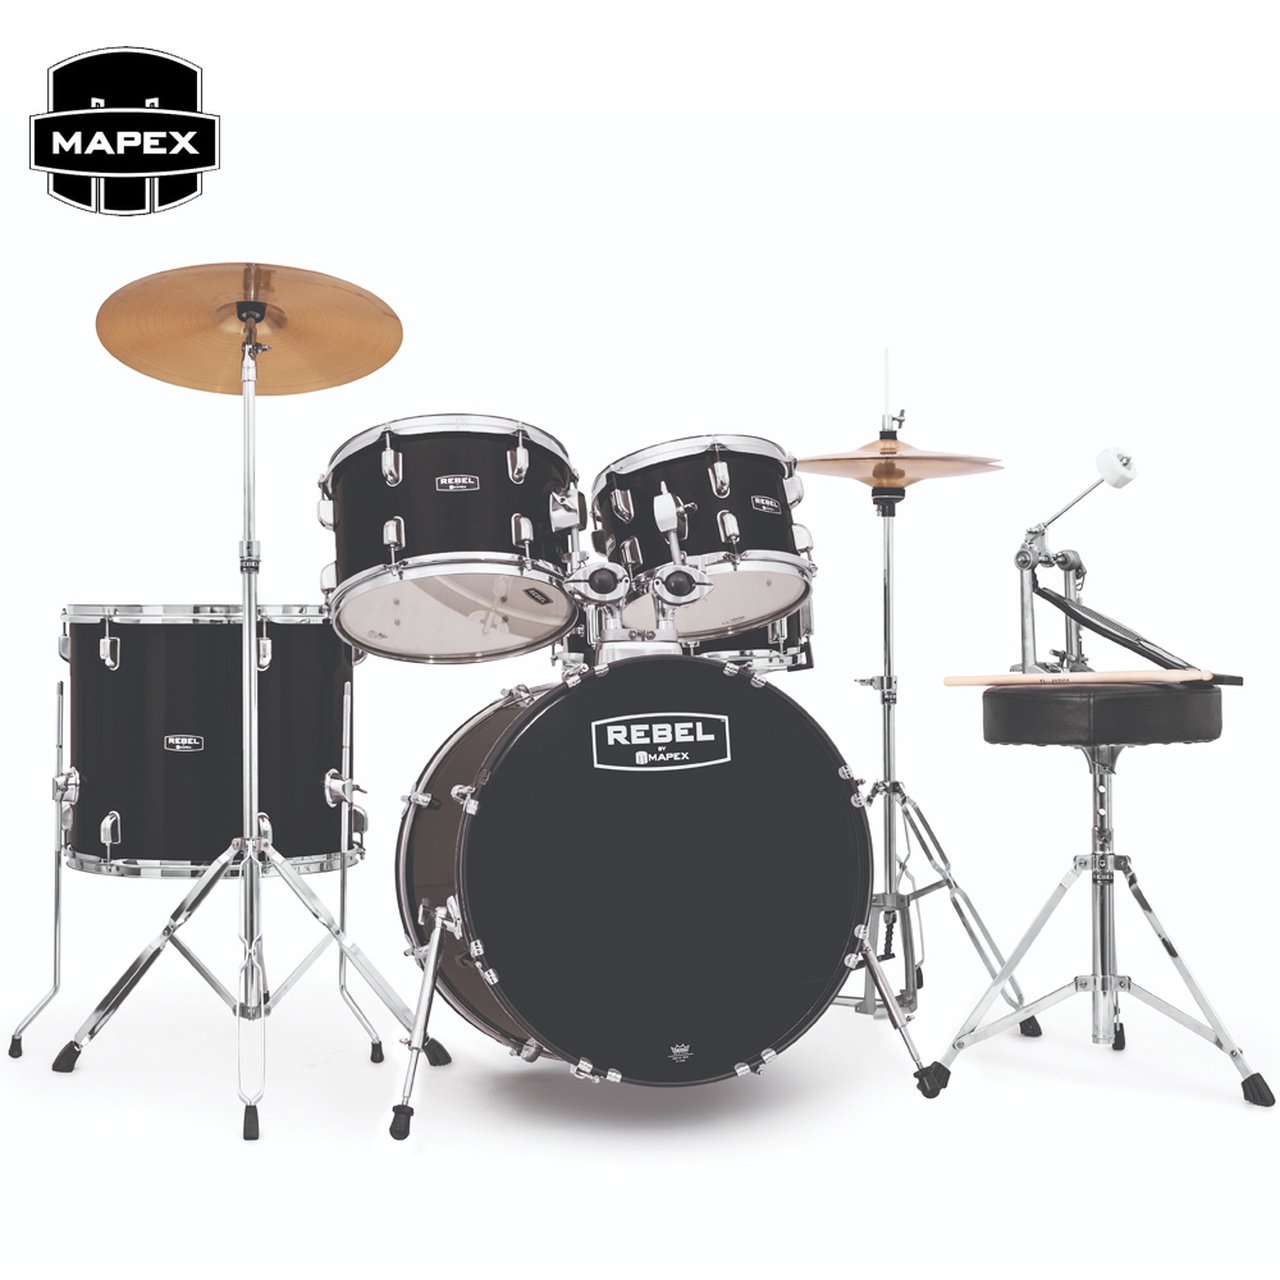 Mapex Rebel 5-Piece Drum Kit 20 Bass Drum with Hardware and Cymbals- Black